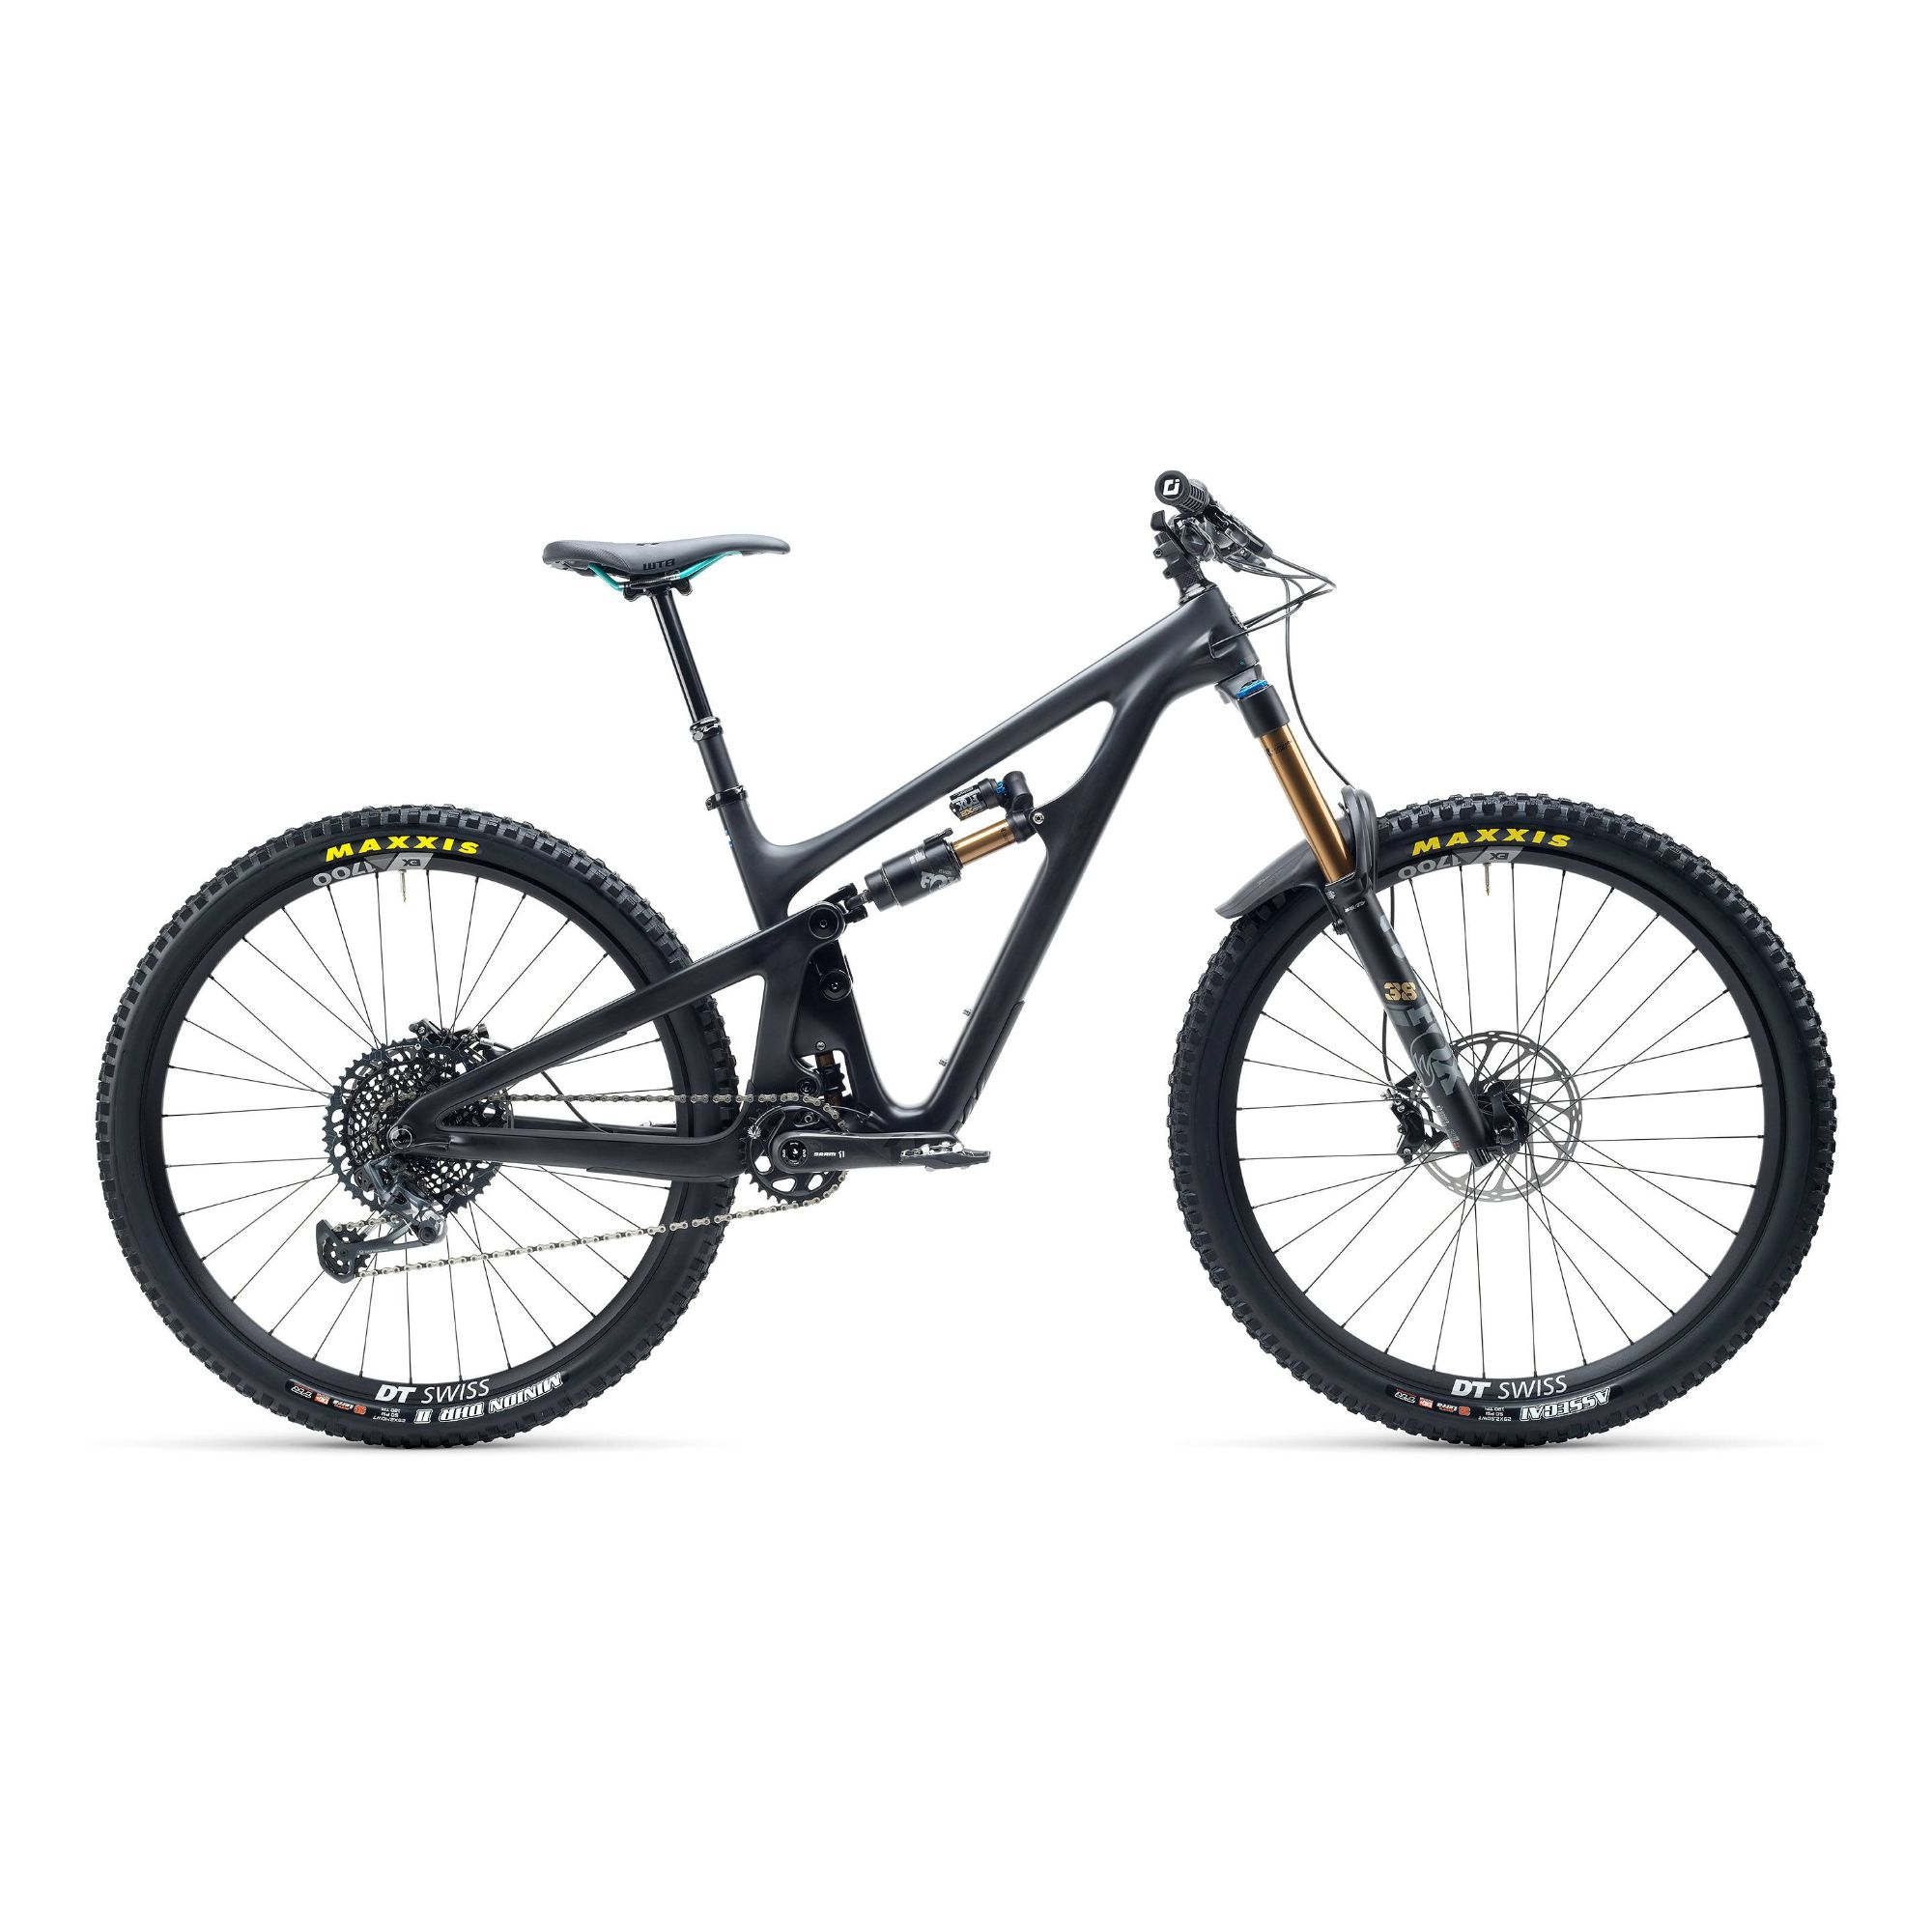 Yeti SB150 T Series T2 29er XO1 Carbon Mountain Bike 2021 Raw / Grey